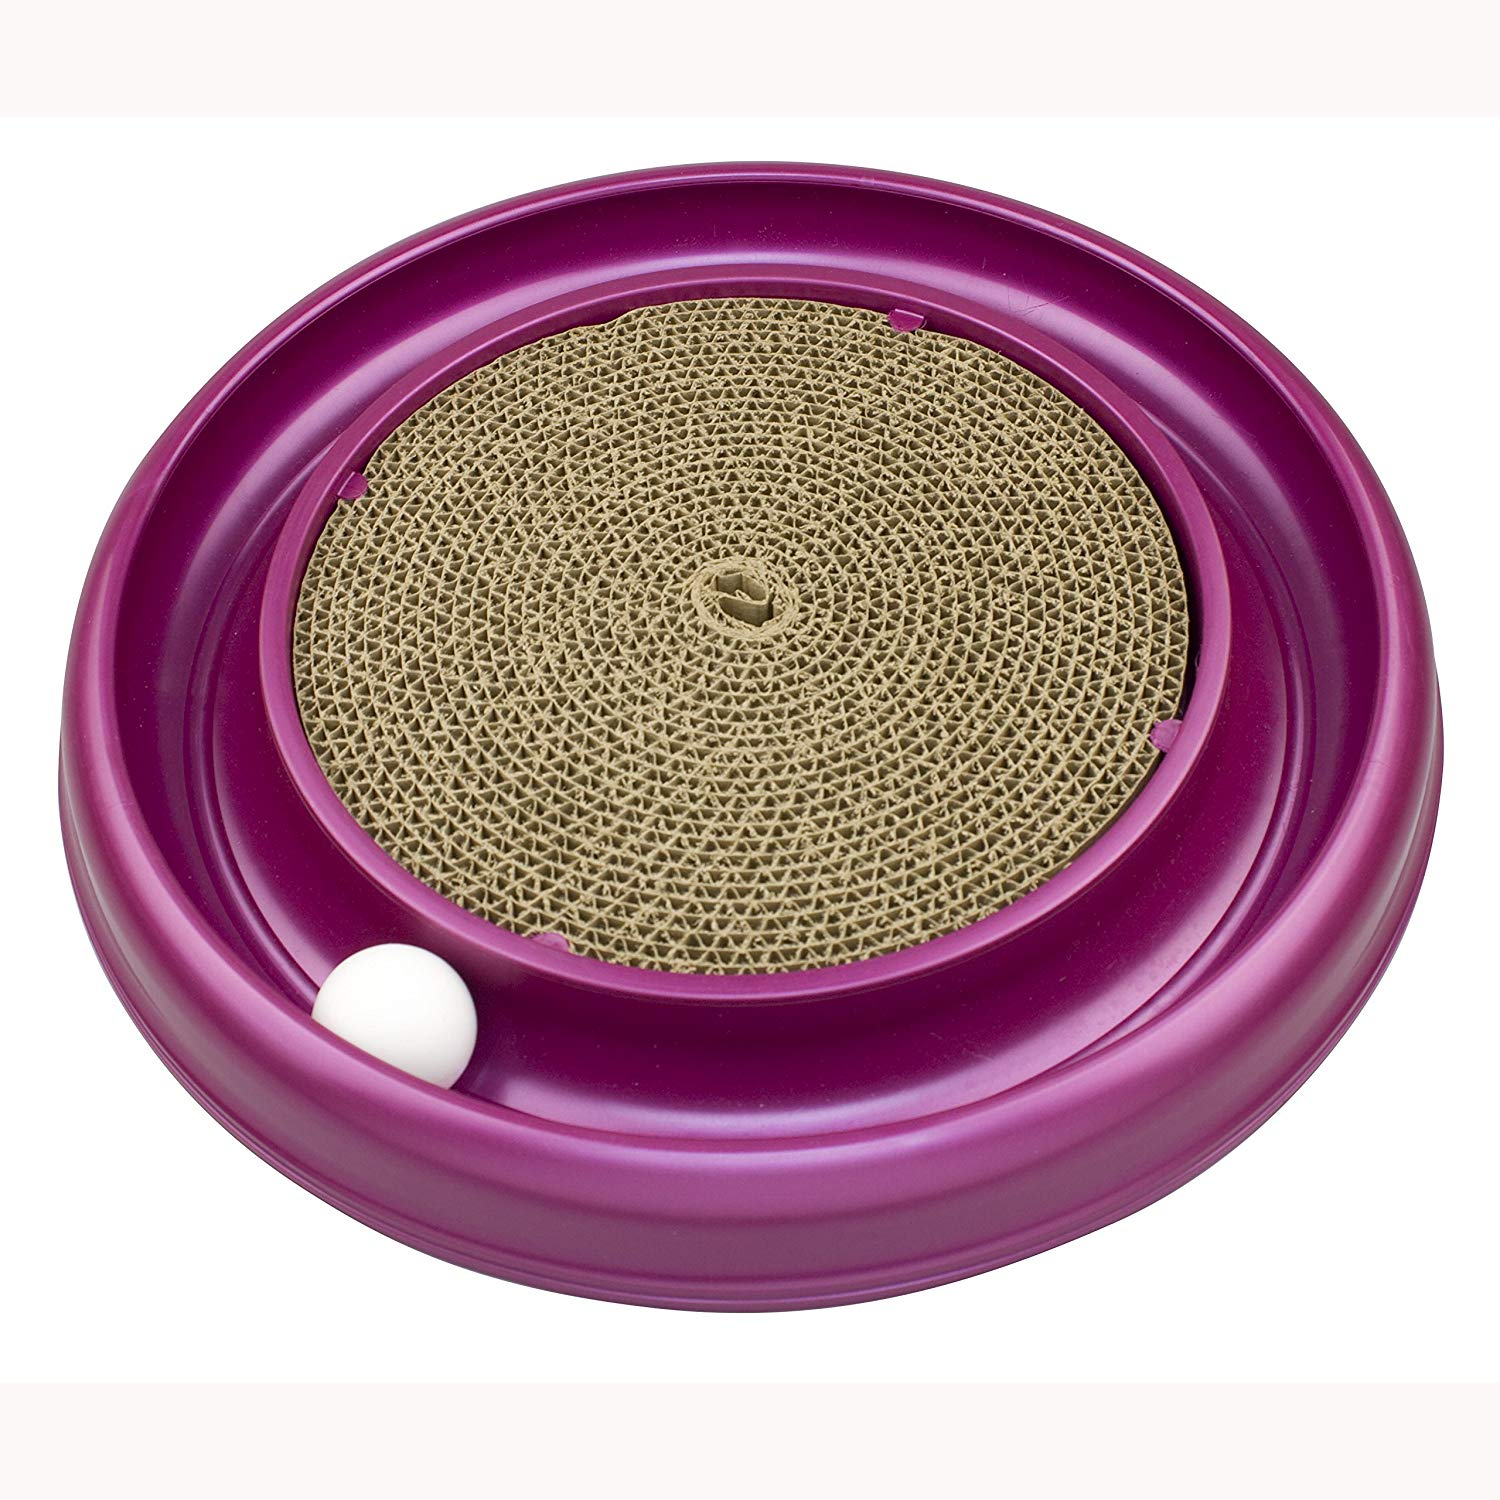 Bergan Turbo Scratcher Cat Toys for Indoor Cats Review by www.puppyurl.com